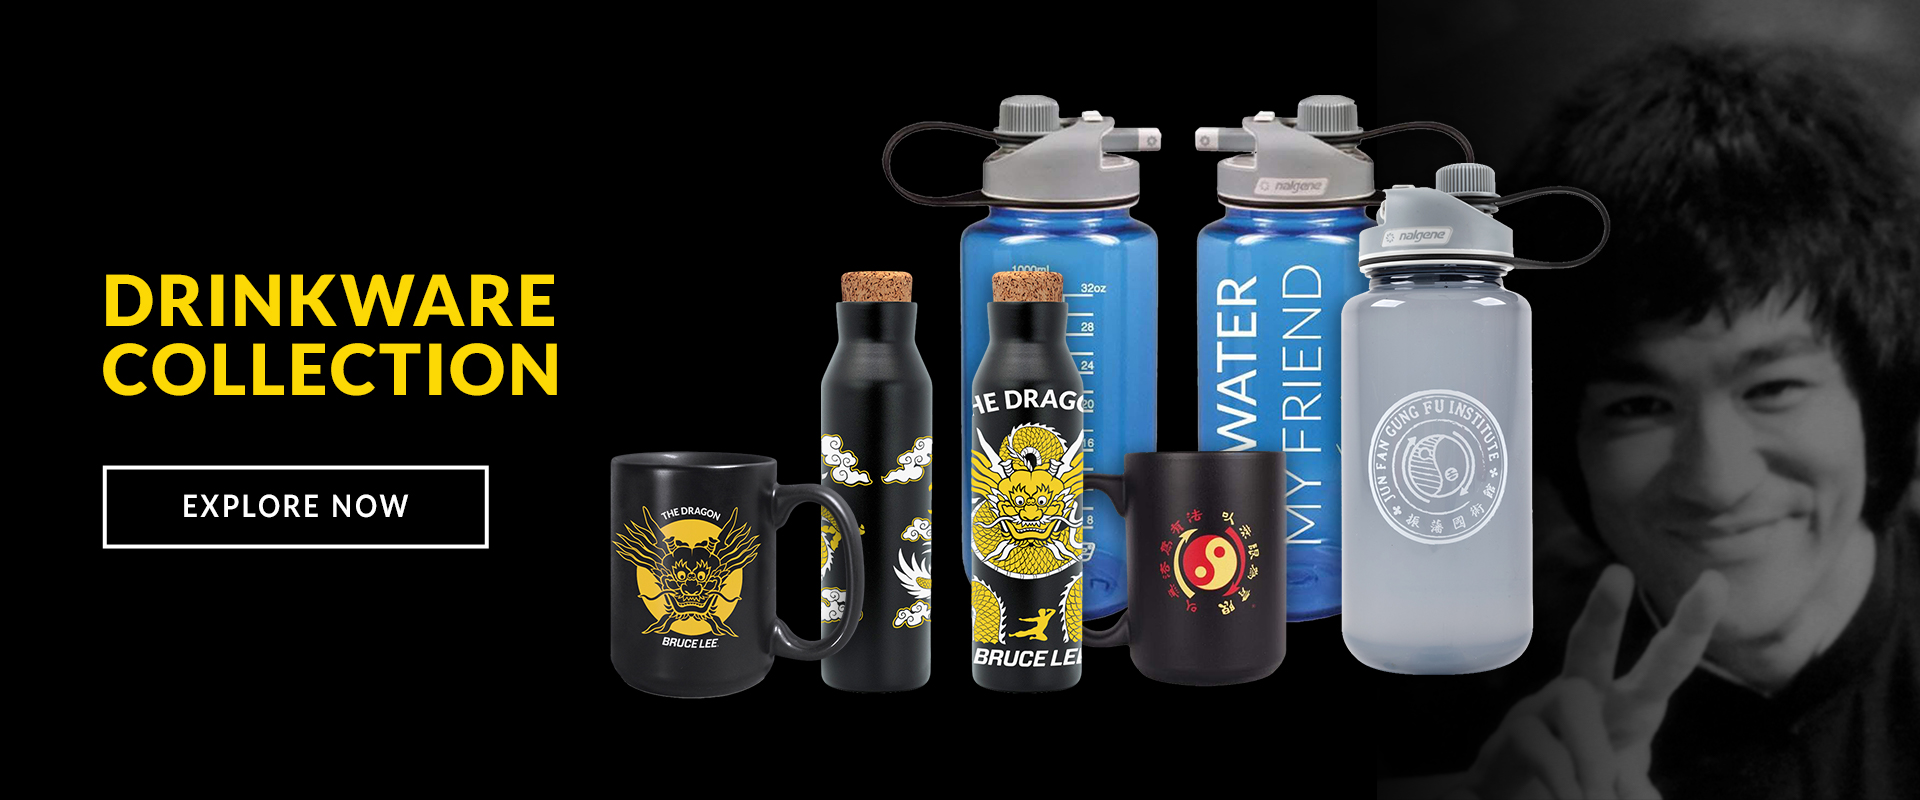 Bruce Lee Drinkware Collection